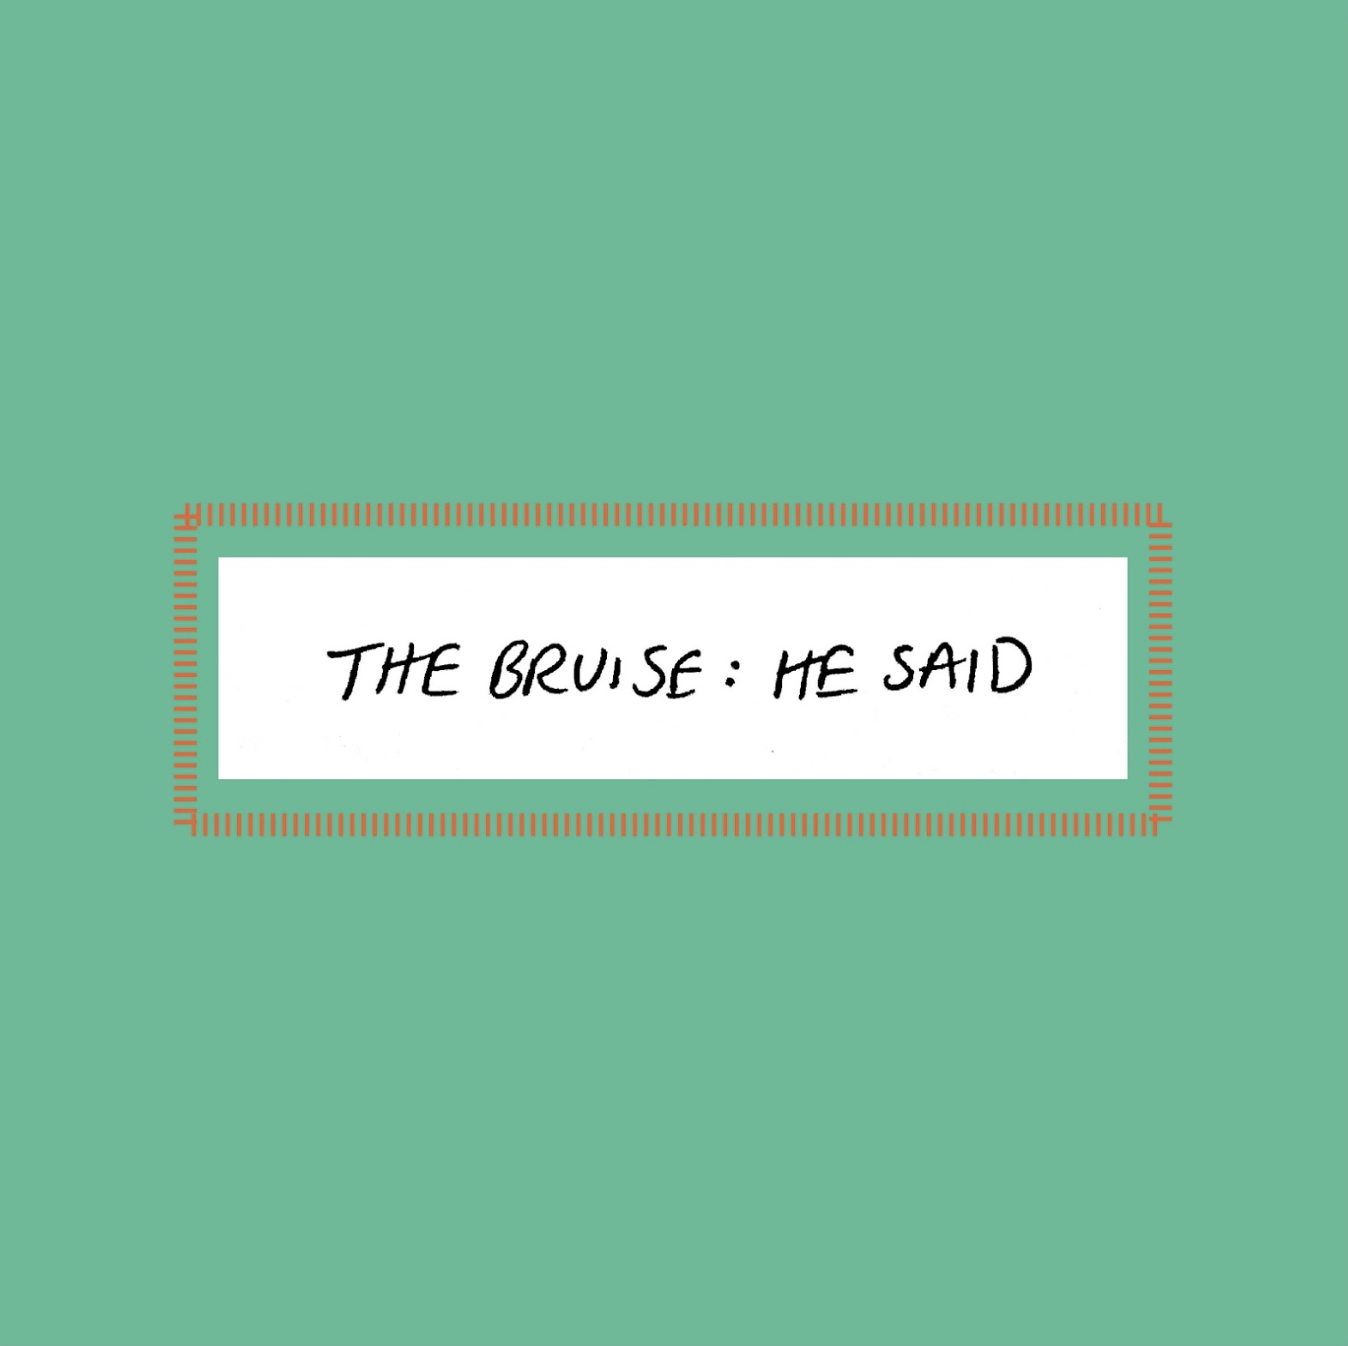 The Bruise: He Said  by Emilie Unterweger